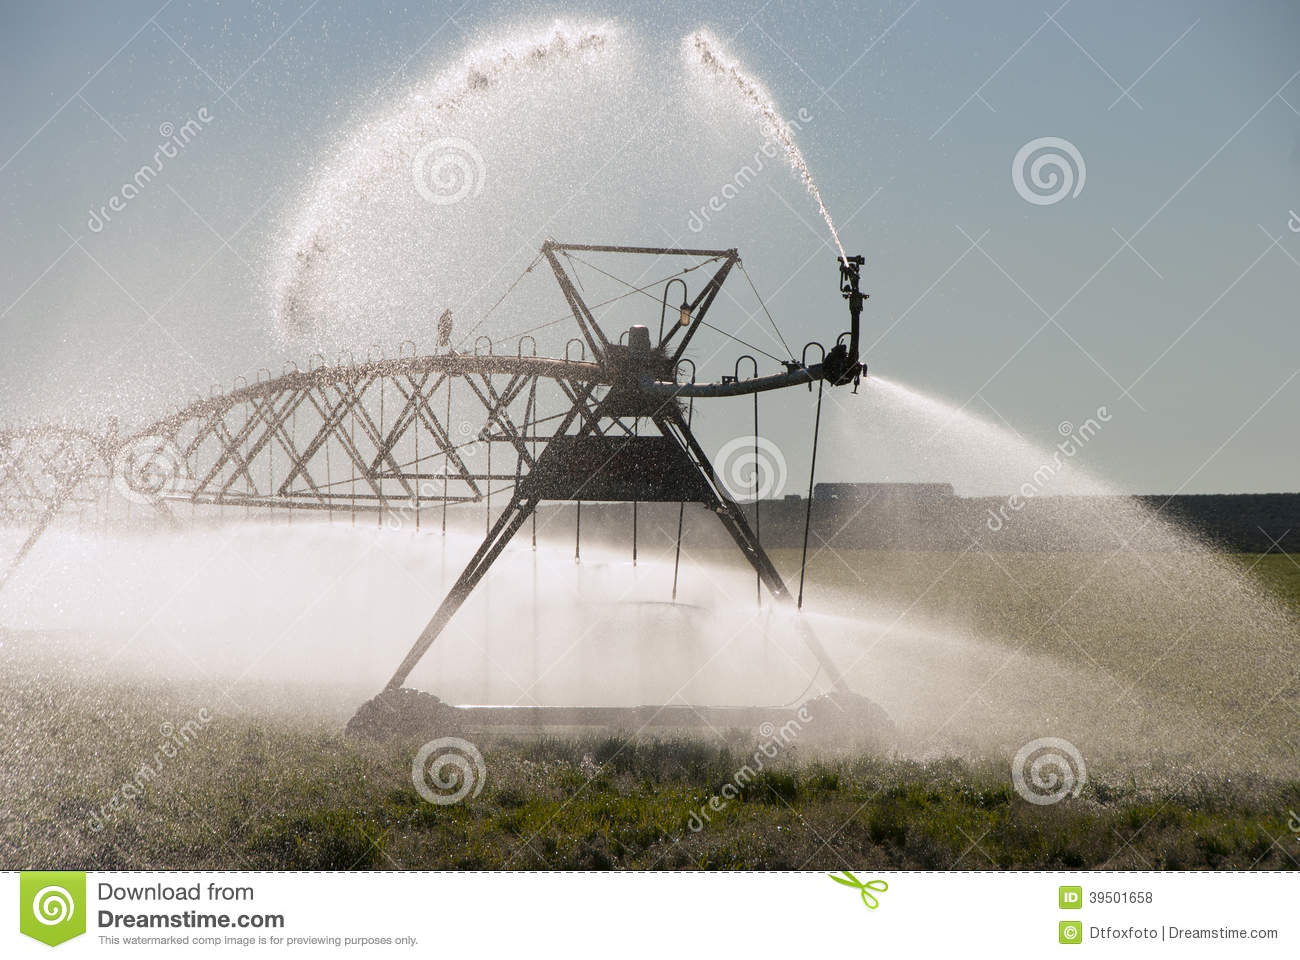 Crow Irrigation